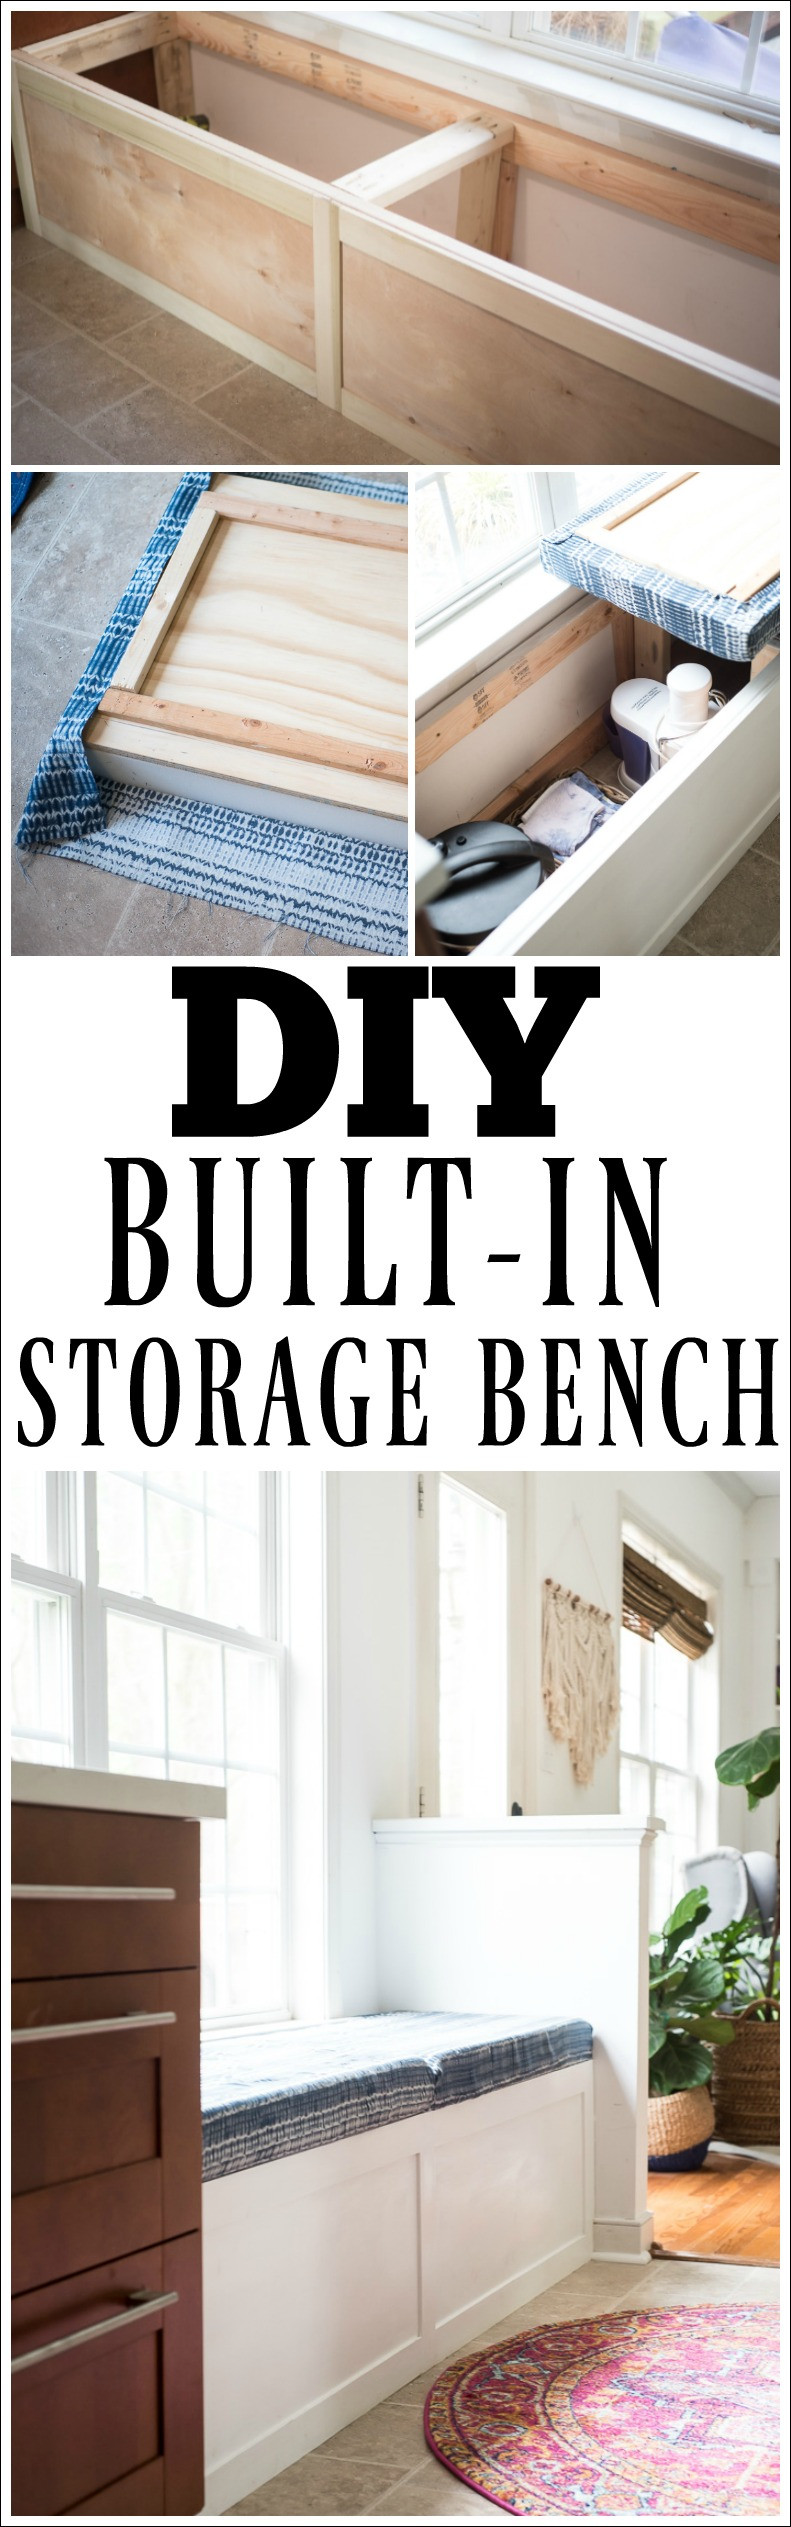 Best ideas about DIY Built In Bench . Save or Pin diy built in storage bench PLACE OF MY TASTE Now.